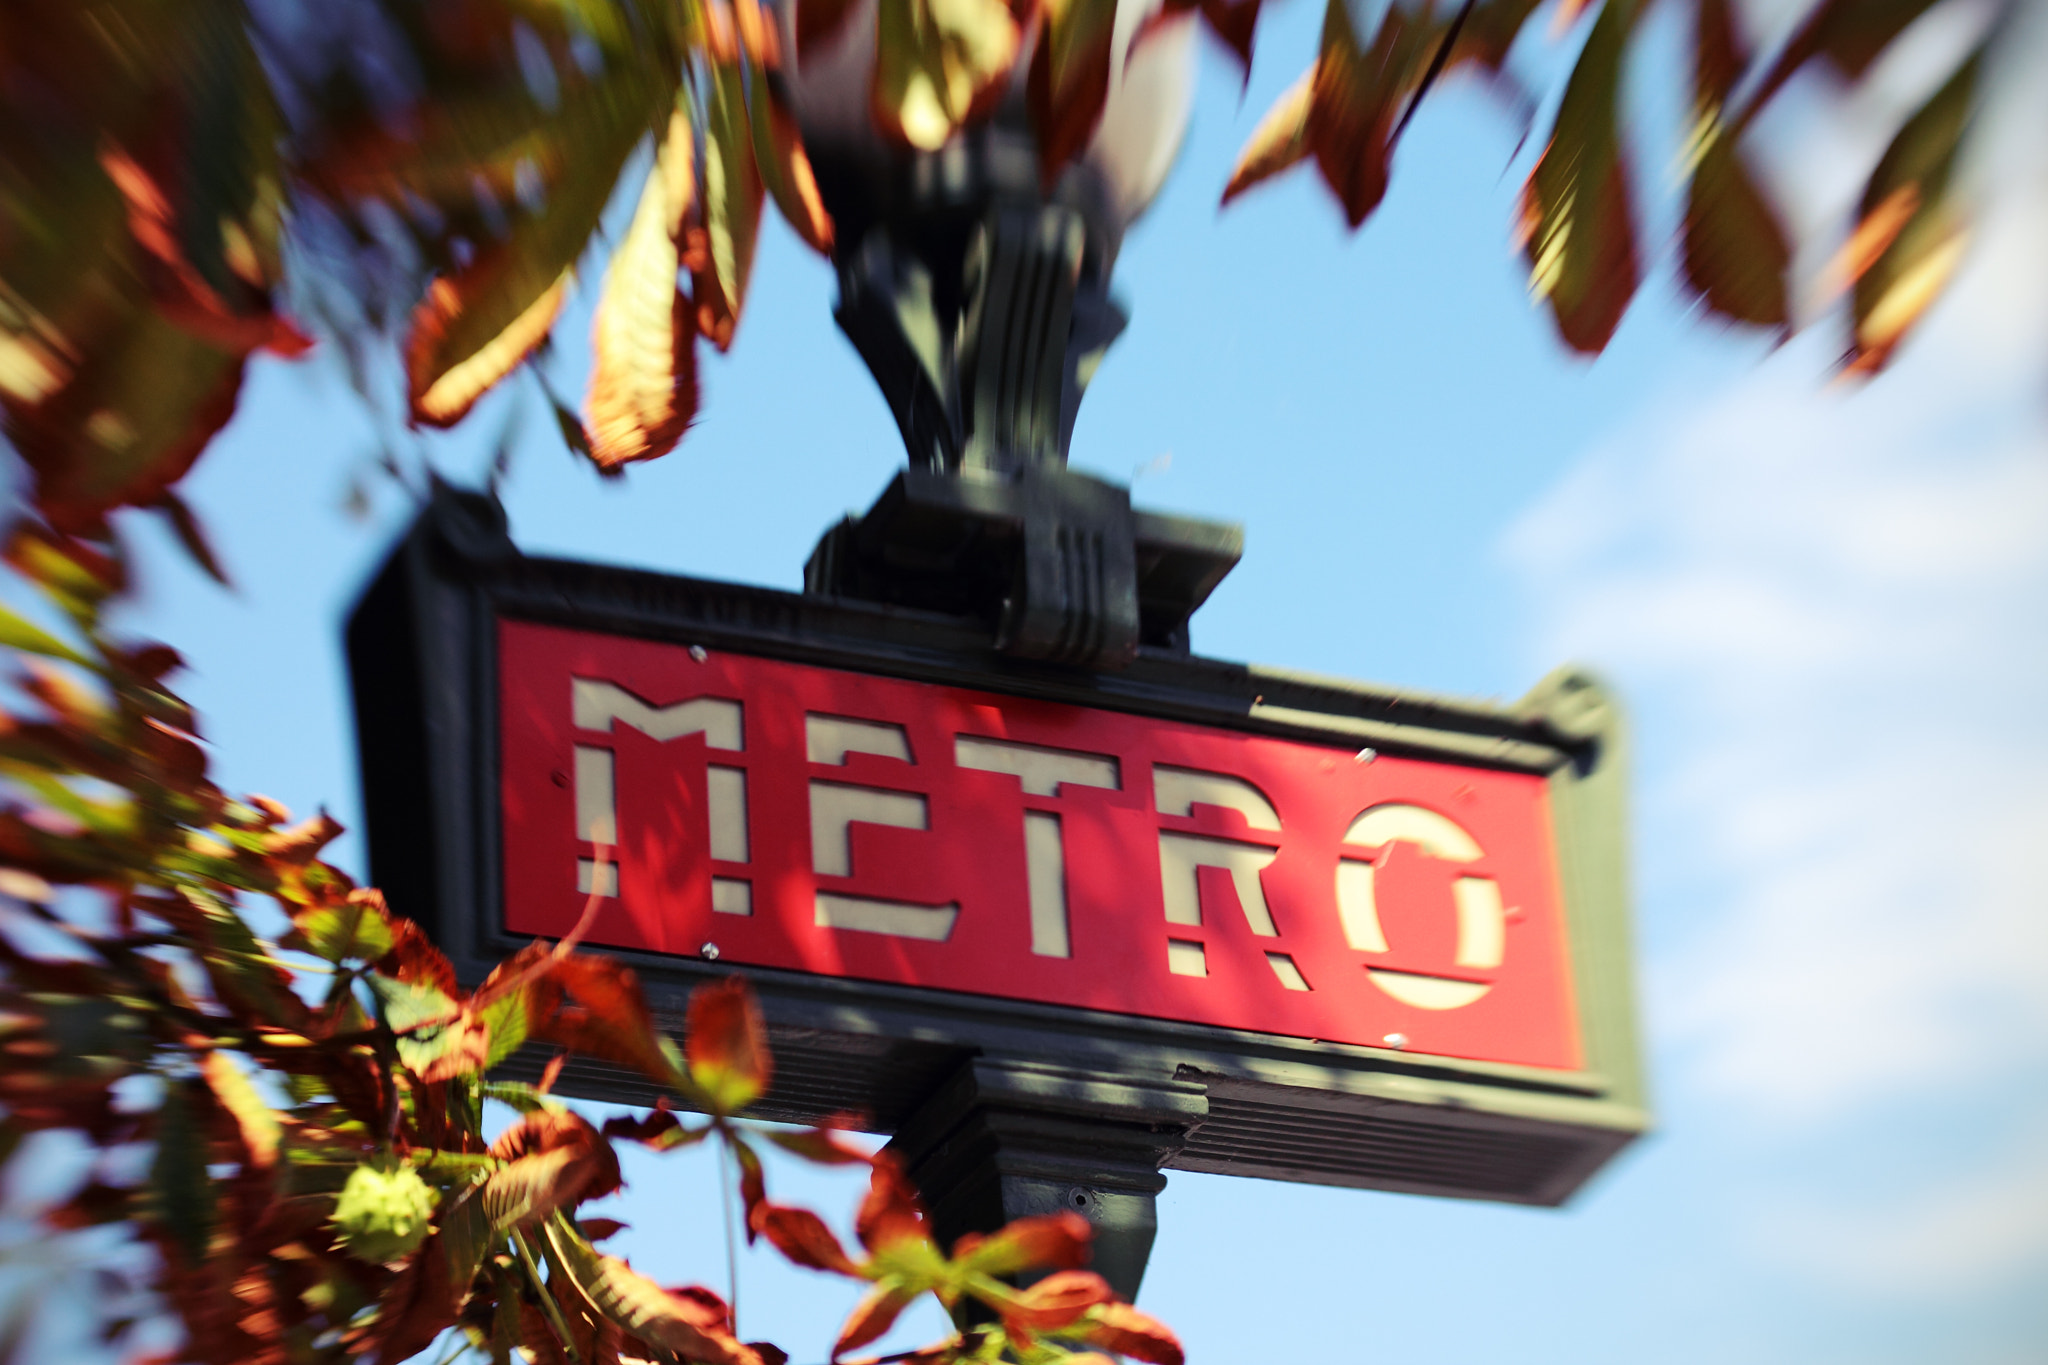 Photograph Metro by Geoff R on 500px